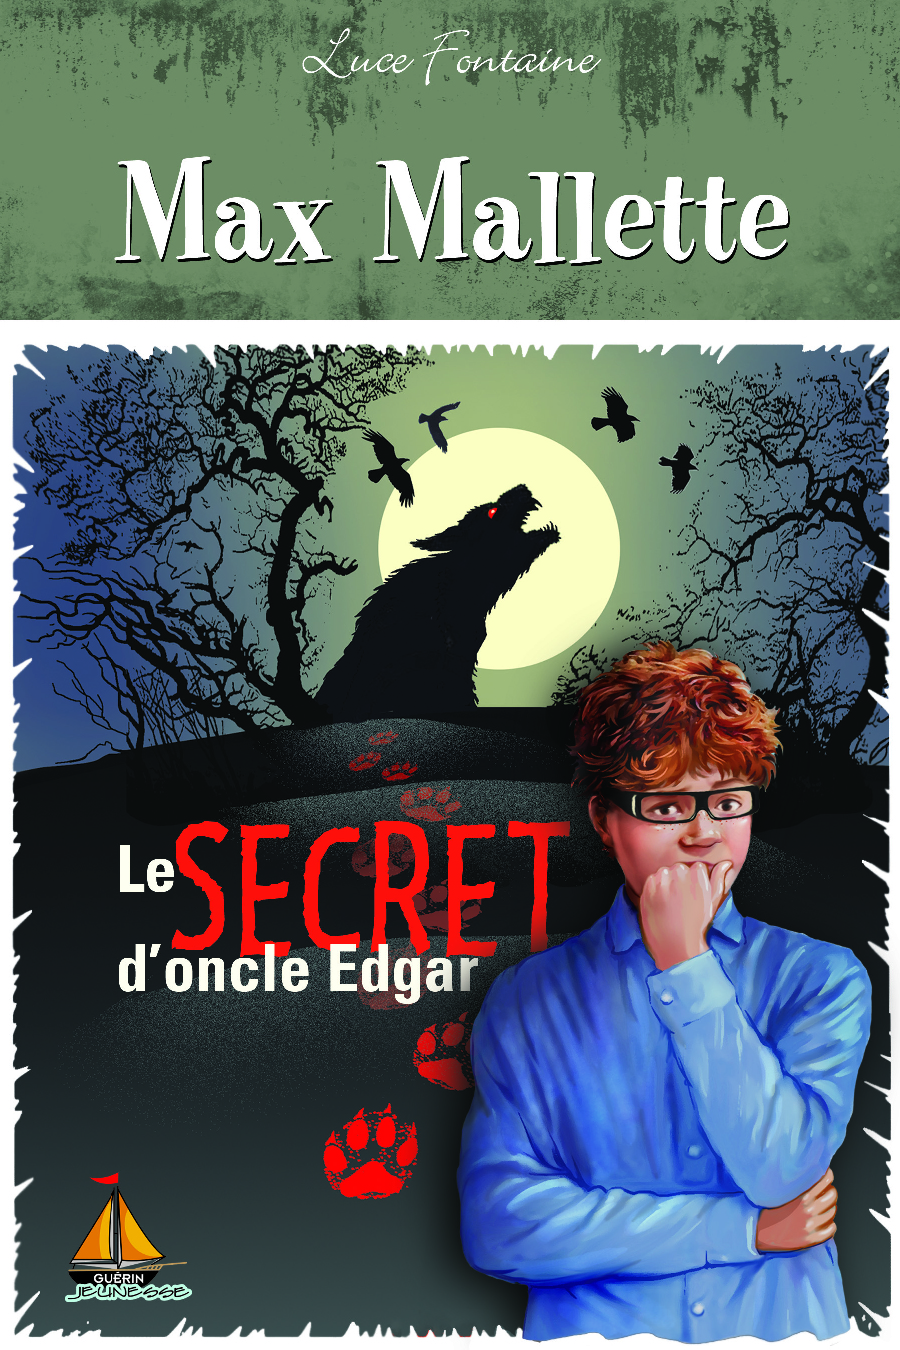 Vignette du livre Max Mallette :Le secret d'oncle Edgar